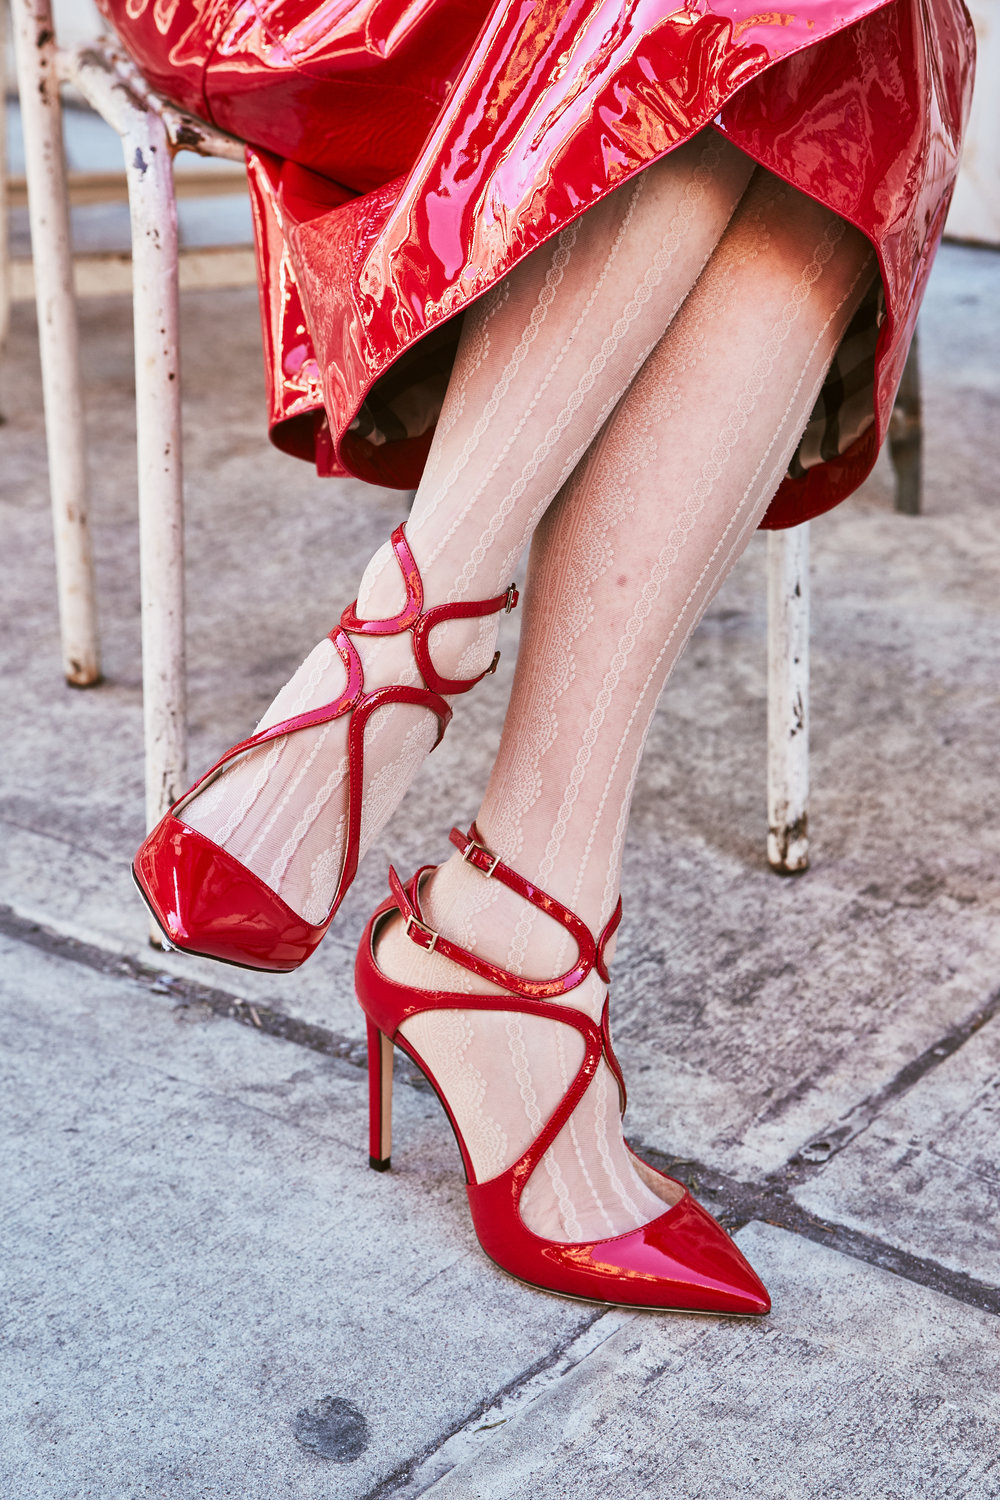 619e4650f61 Feel the love in these Jimmy Choo Lance Red Patent Leather Strappy Sandals -